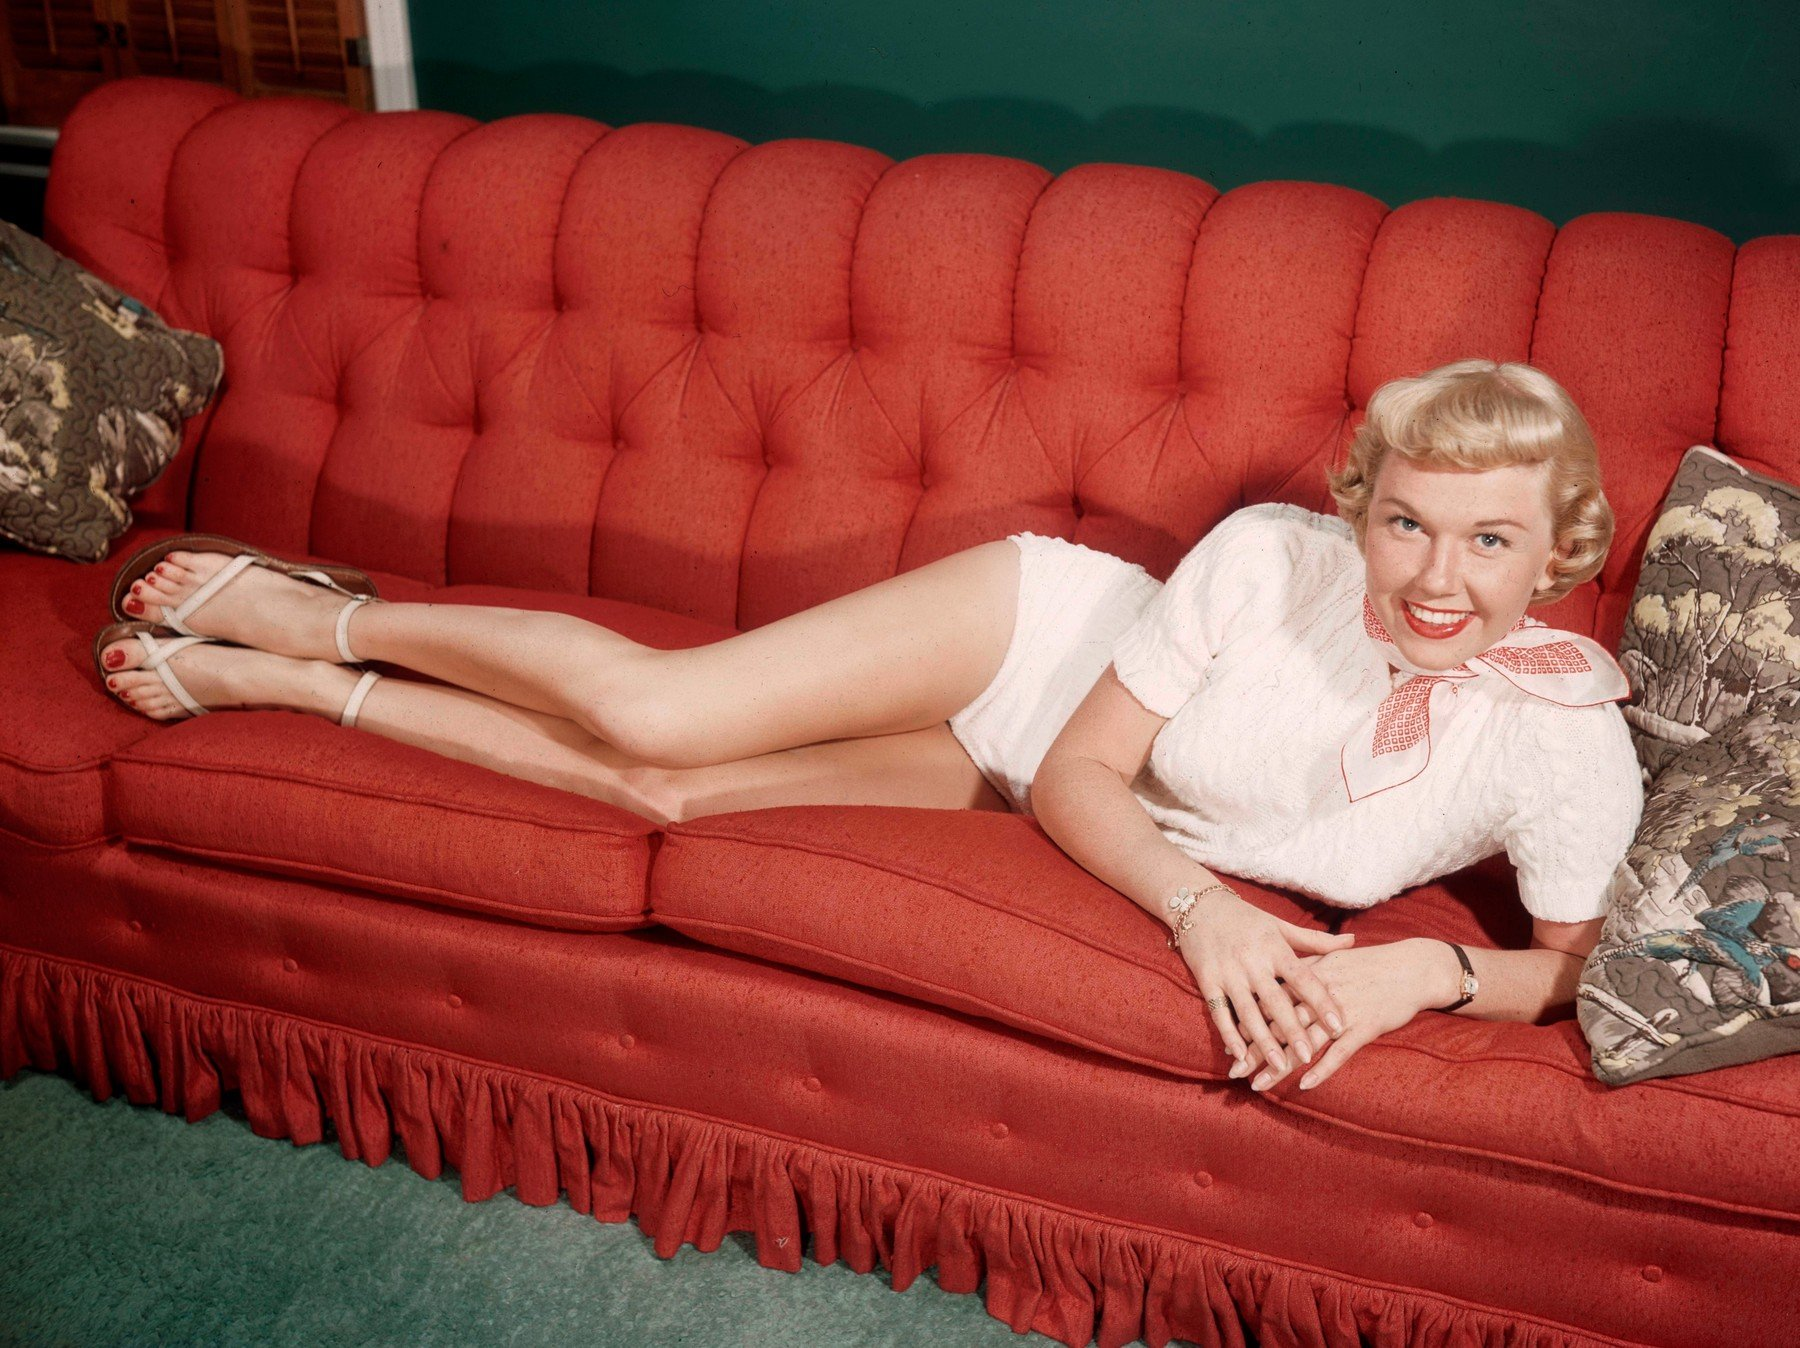 Doris Day circa 1945, Image: 218593721, License: Rights-managed, Restrictions: For Editorial Use Only -, Model Release: no, Credit line: Profimedia, Hollywood Archive